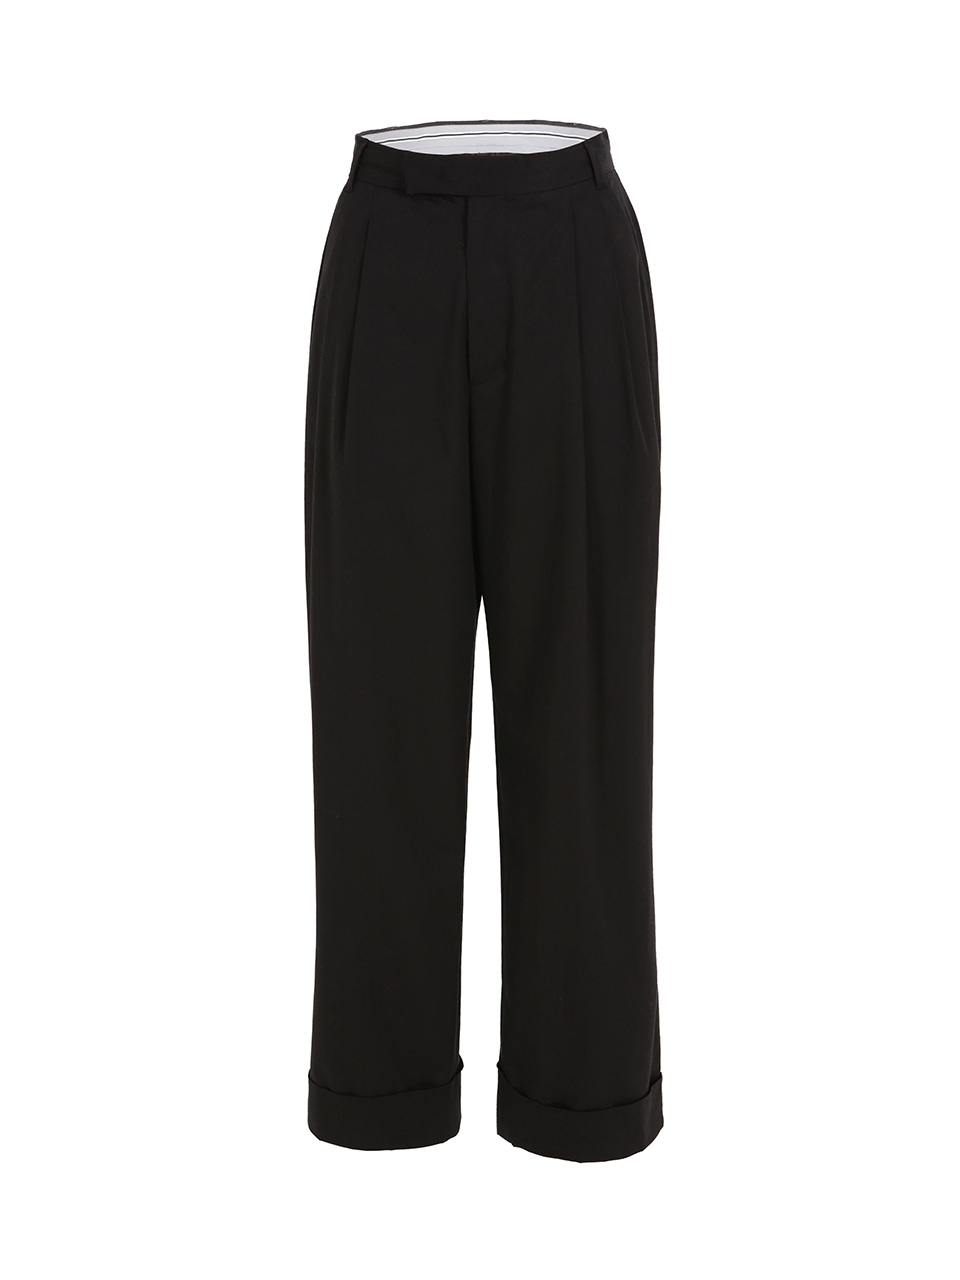 GUKAClassic Cuffed Pants - BLACK